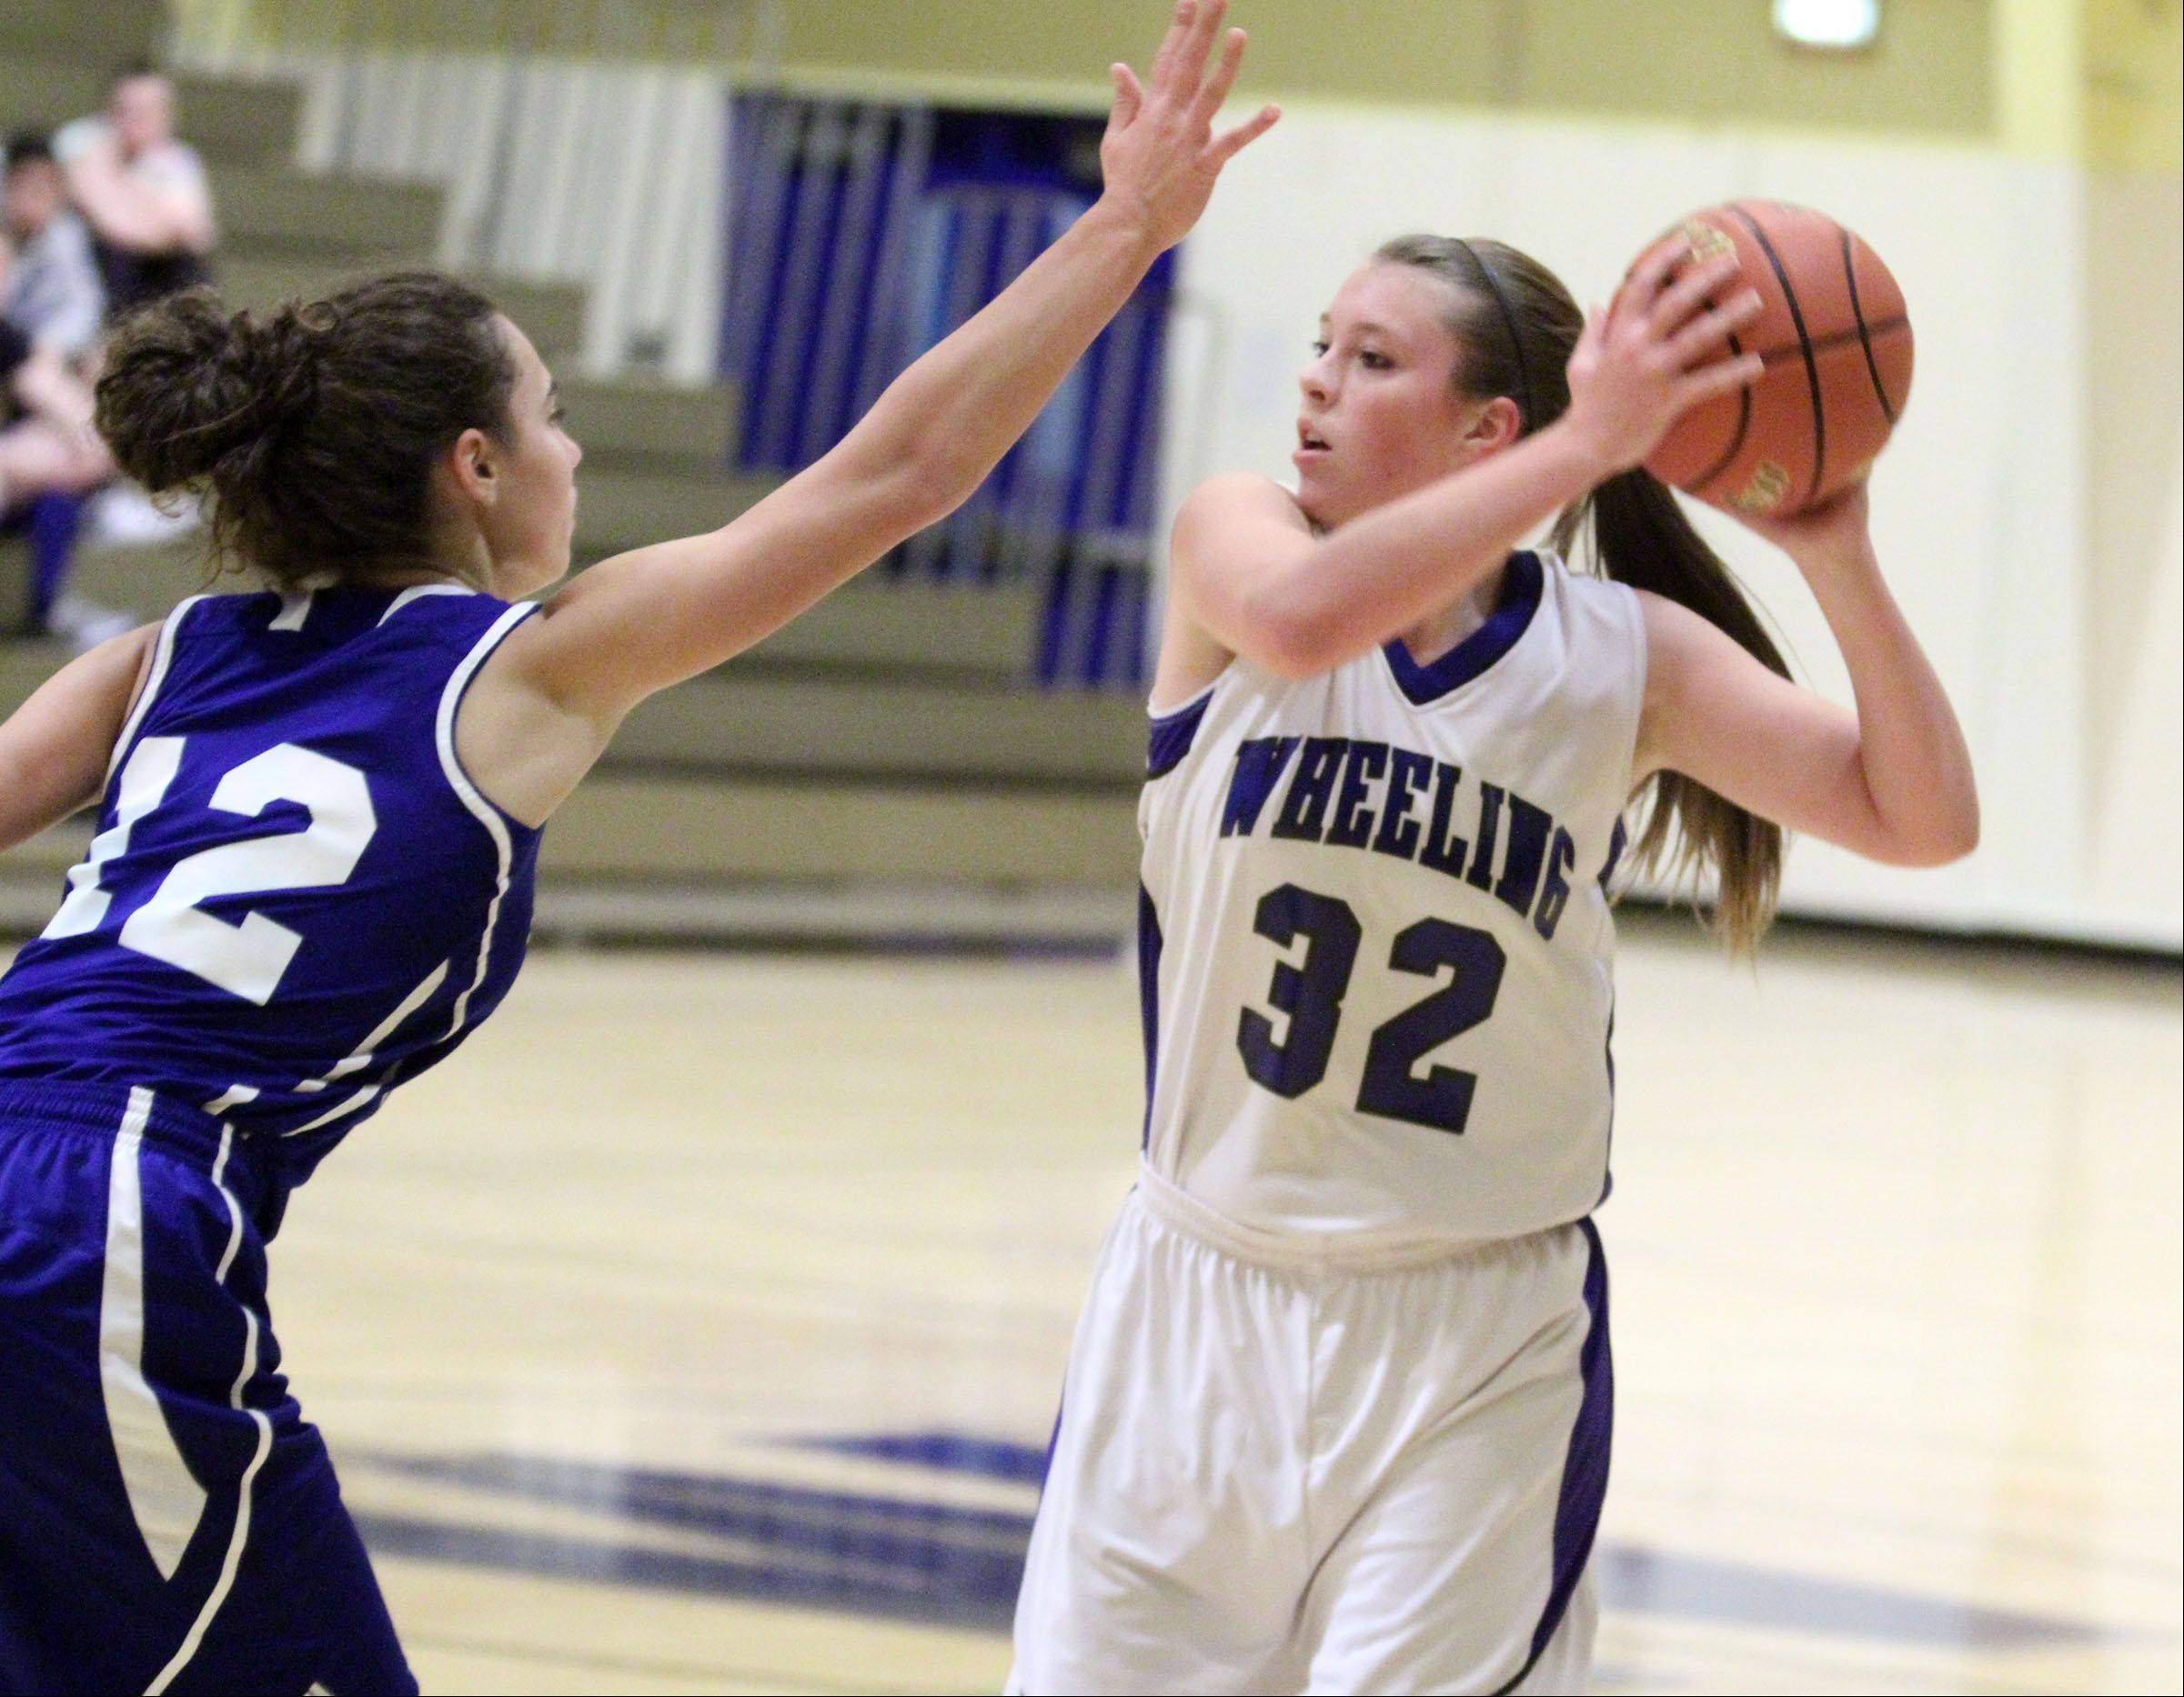 Wheeling's Brie Majkowski looks to pass over Highland Park defender Tina Berardi.